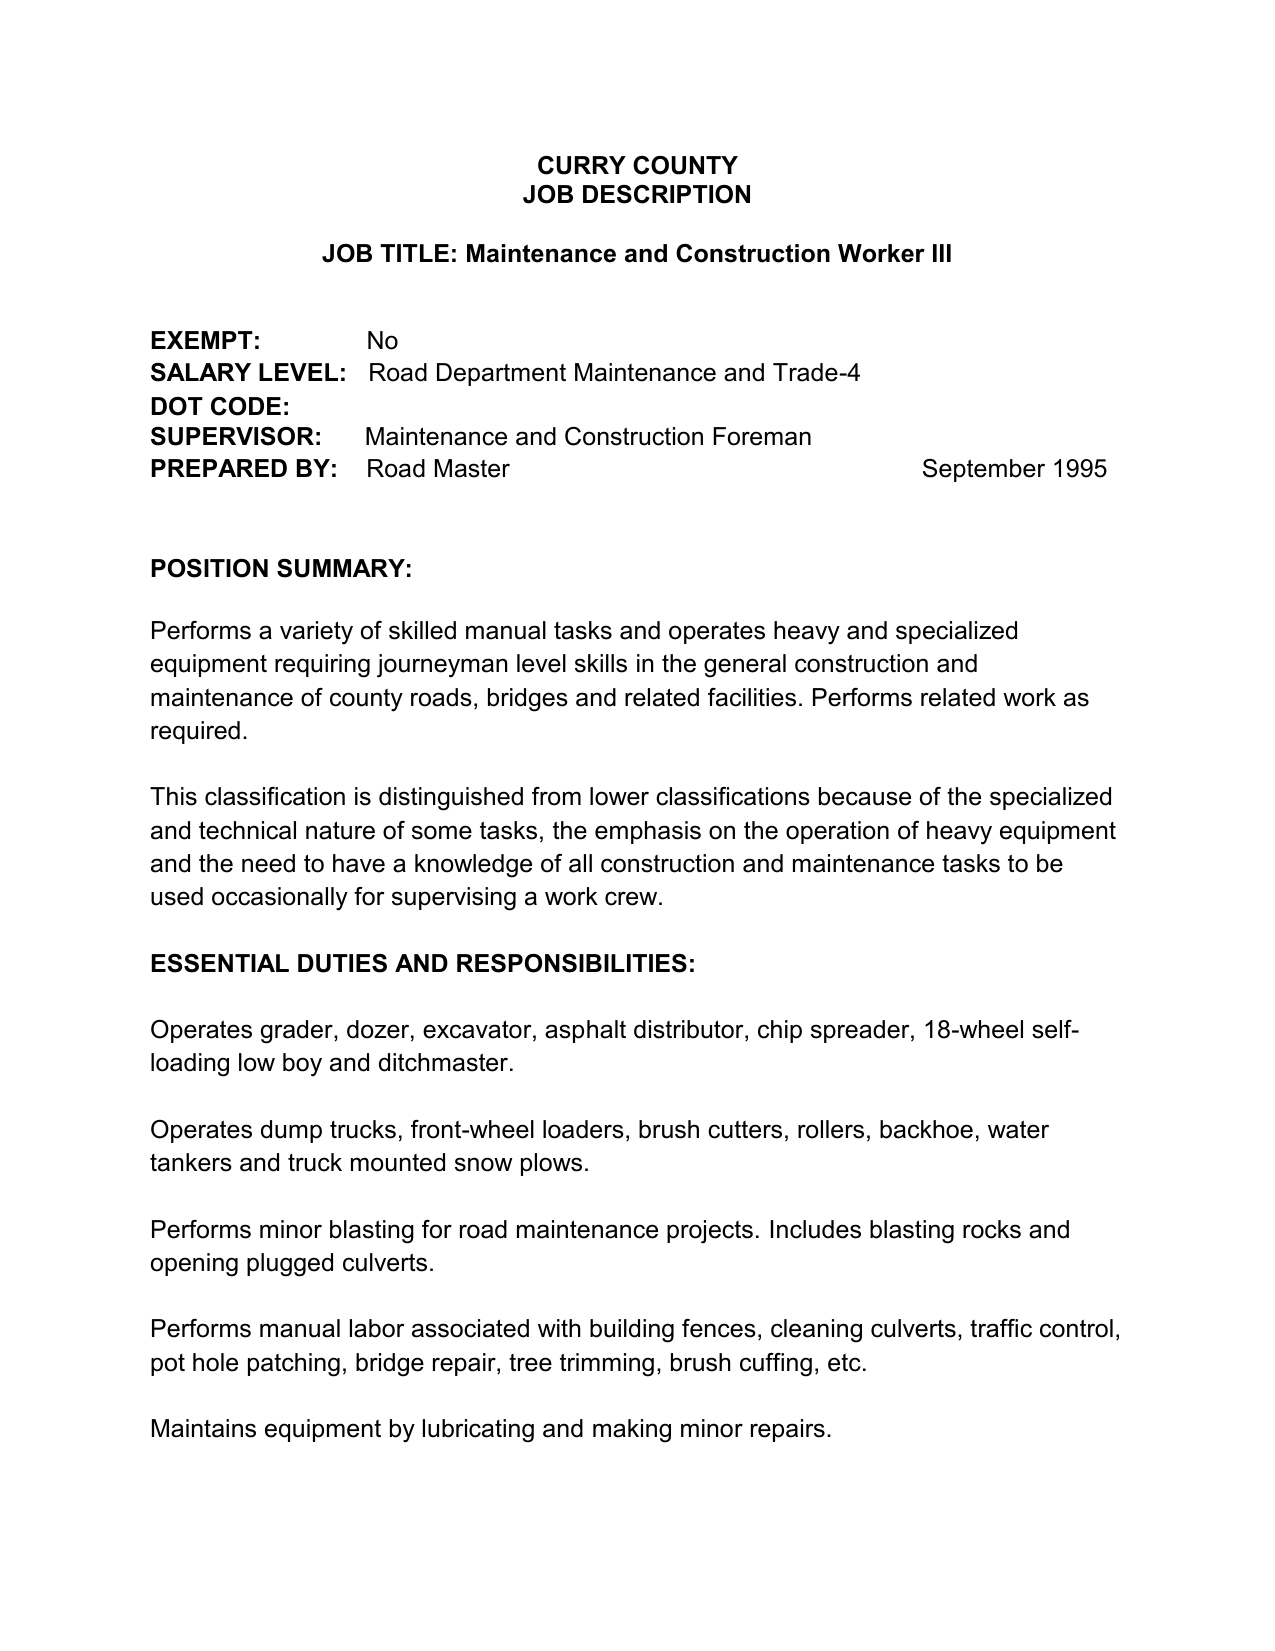 Road Maintenance and Construction Worker III on job cv, job description, job vacancies, job people, job recommendation form, job experience, job career opportunities, job position template, job porfolio, job portfolio, job design, job training, job network, job offer letter, job works, job review, job duties, job career objective, job employment, job responsibilities template,